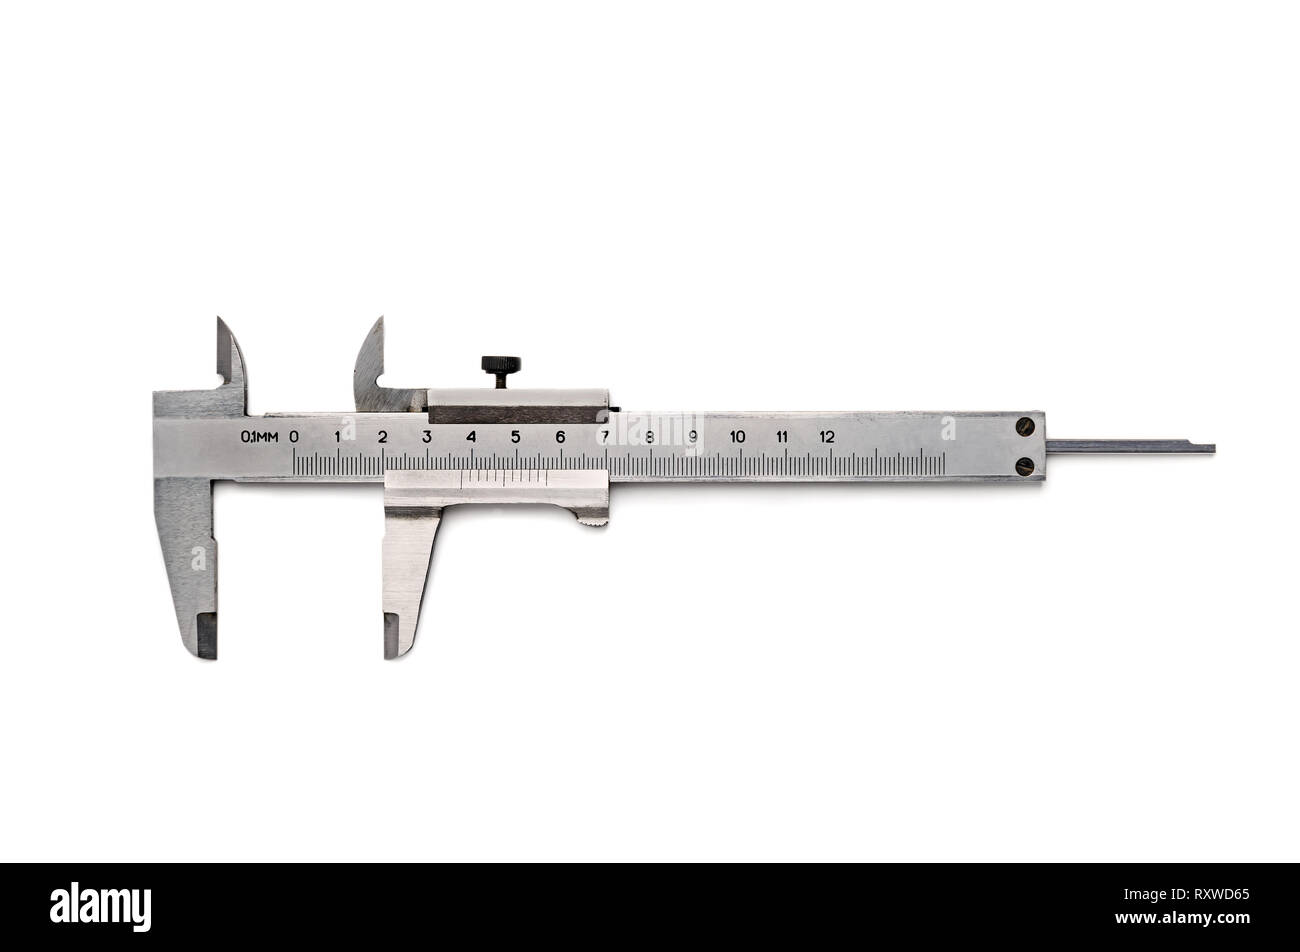 Caliper precision measurement vernier  isolated with clipping path - Stock Image